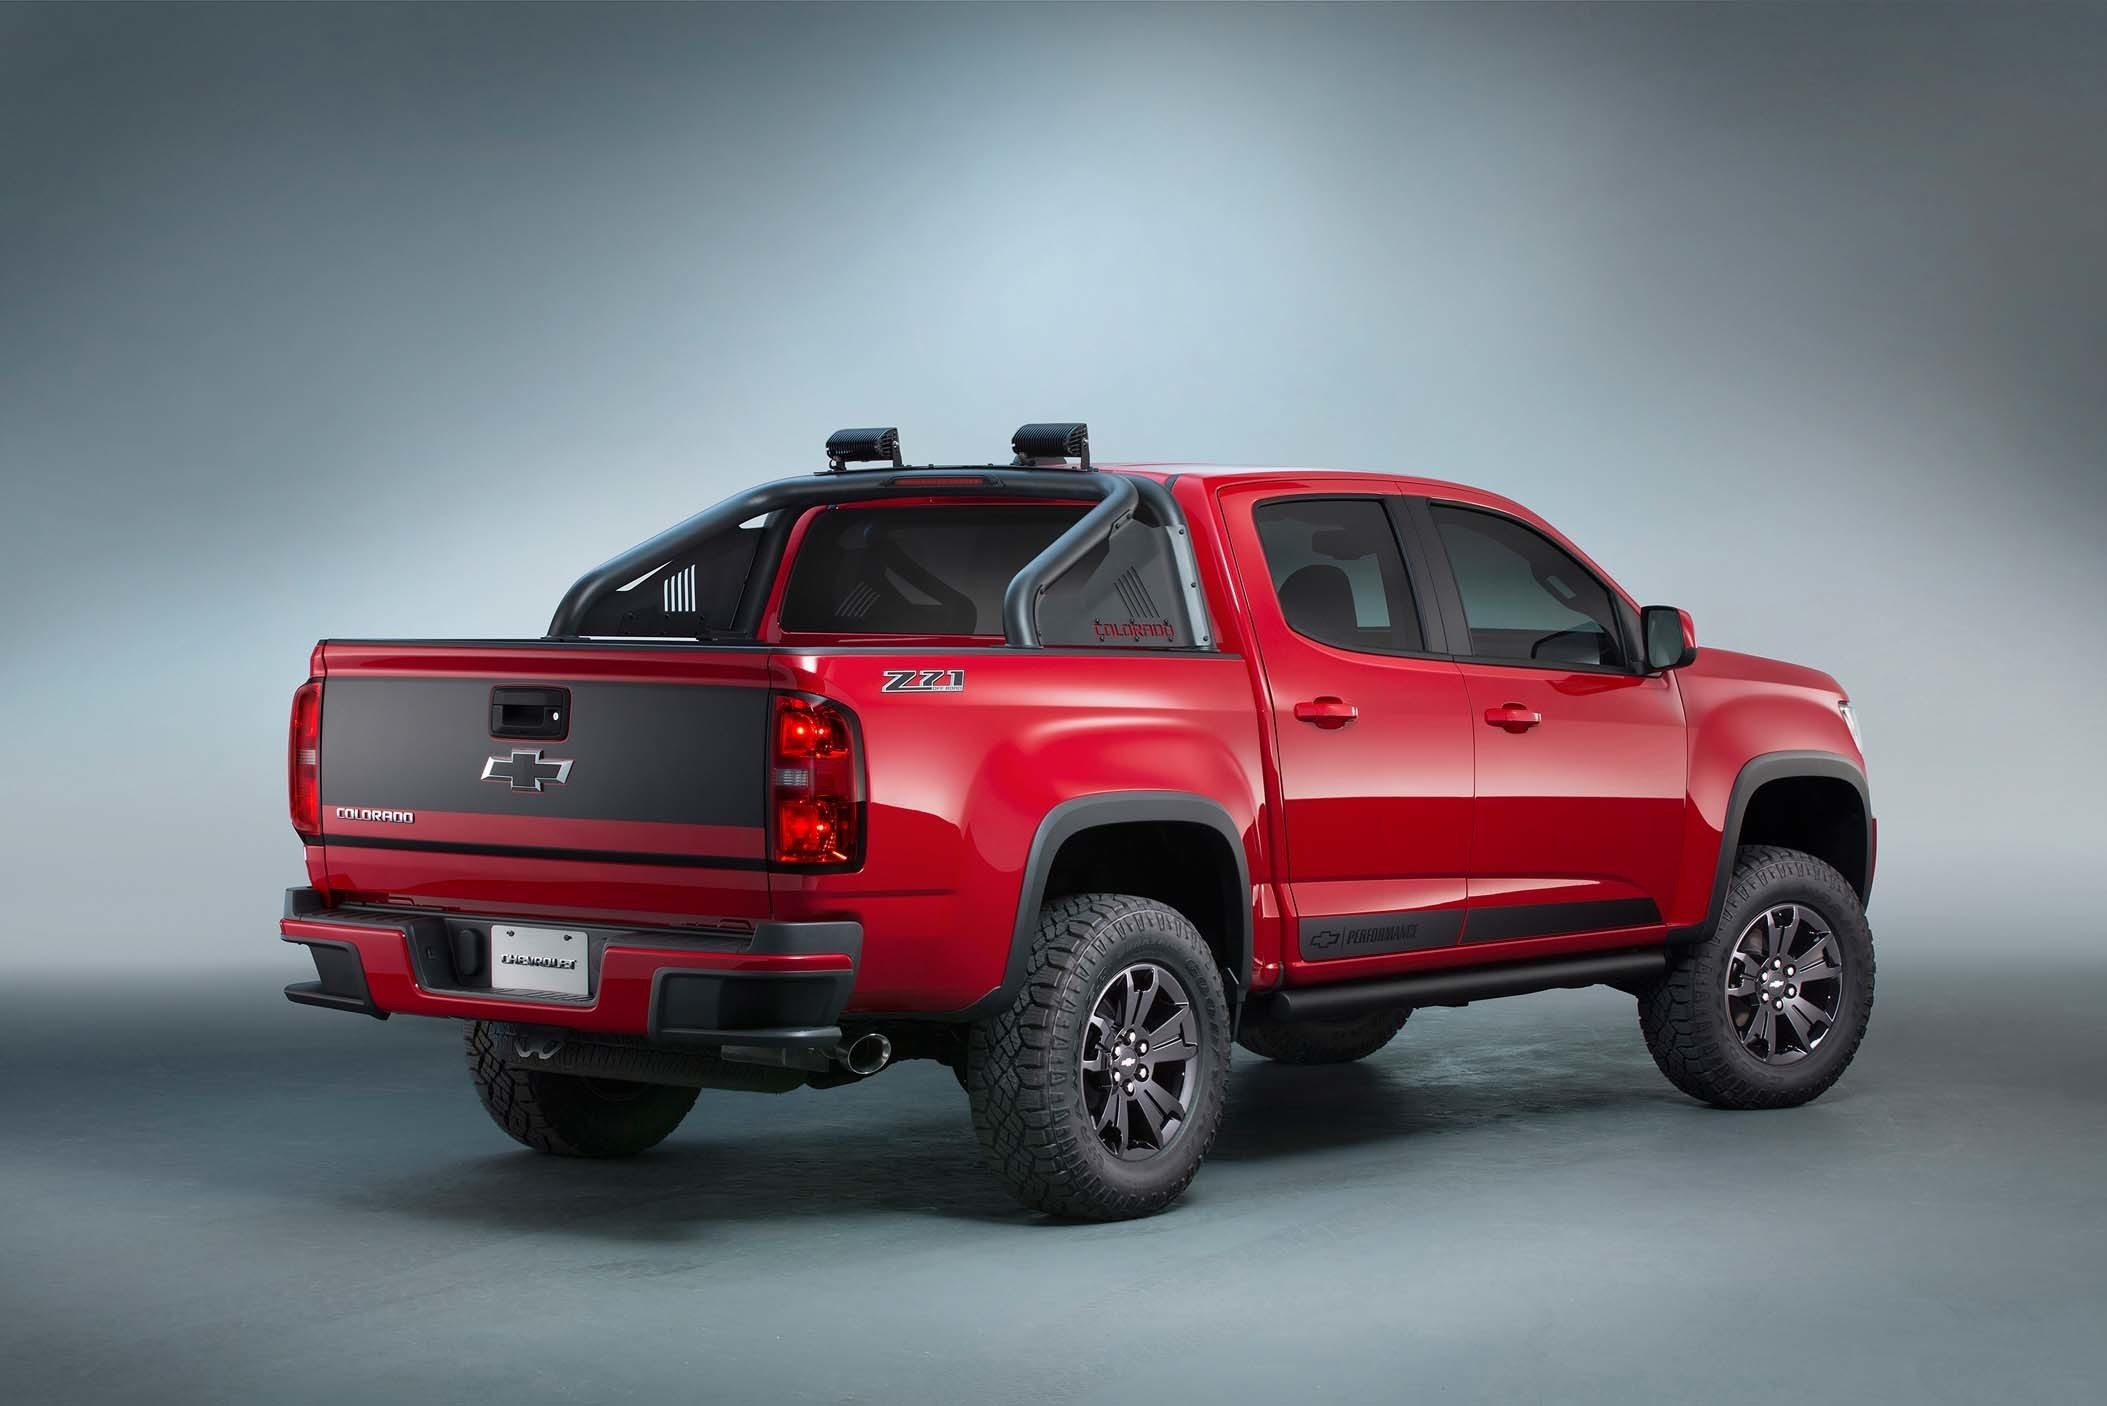 Chevrolet Colorado Z71 Trail Boss 3 0 Concept Is A Ford F